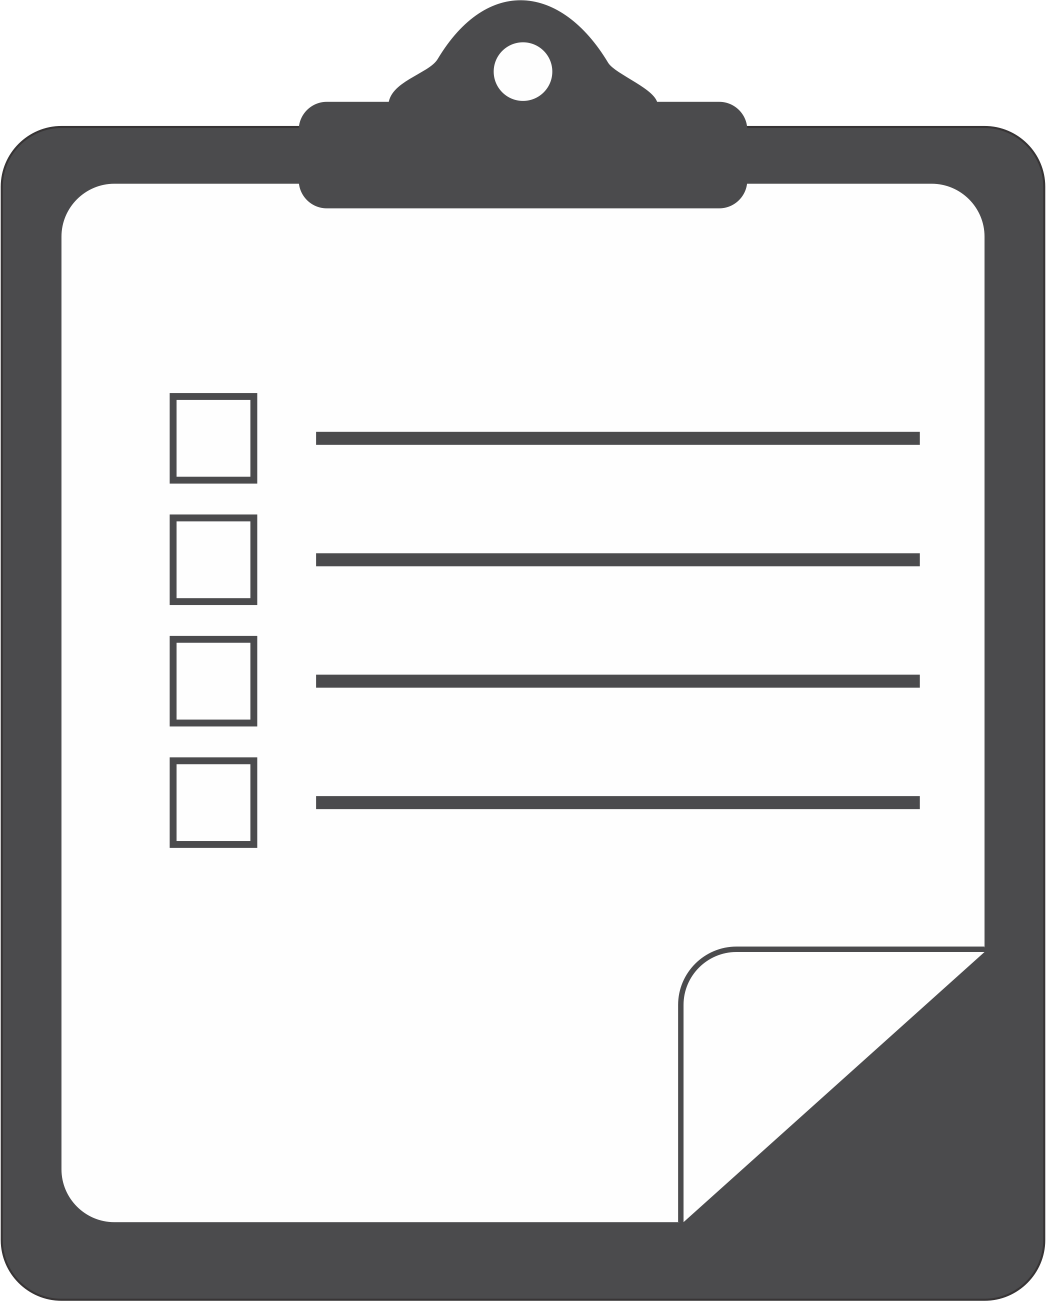 notepad_vectoricon